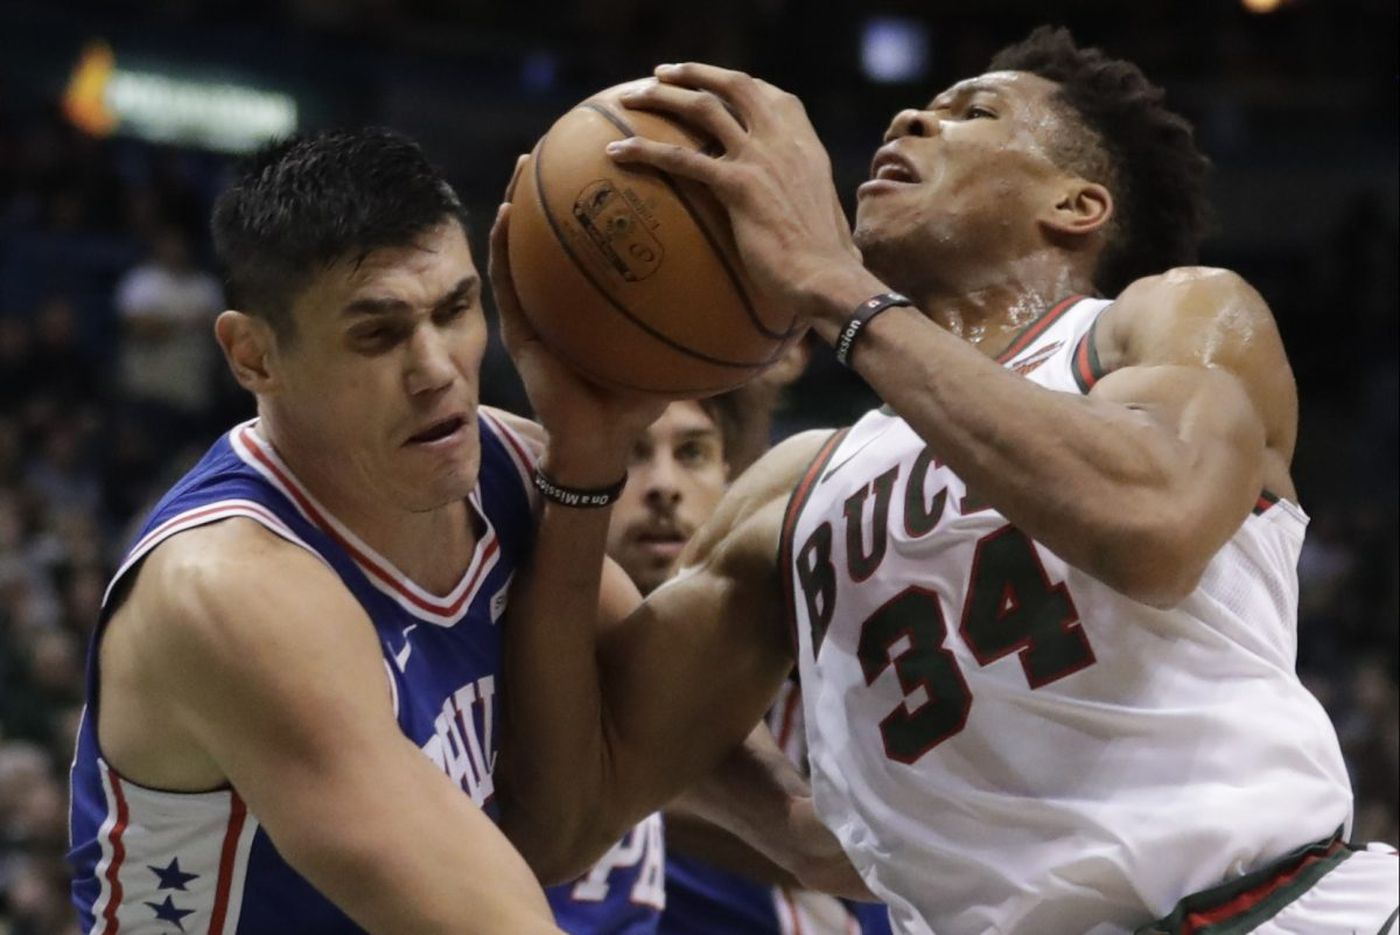 Sixers-Bucks observations: Turnovers, subpar bench play in inexcusable loss